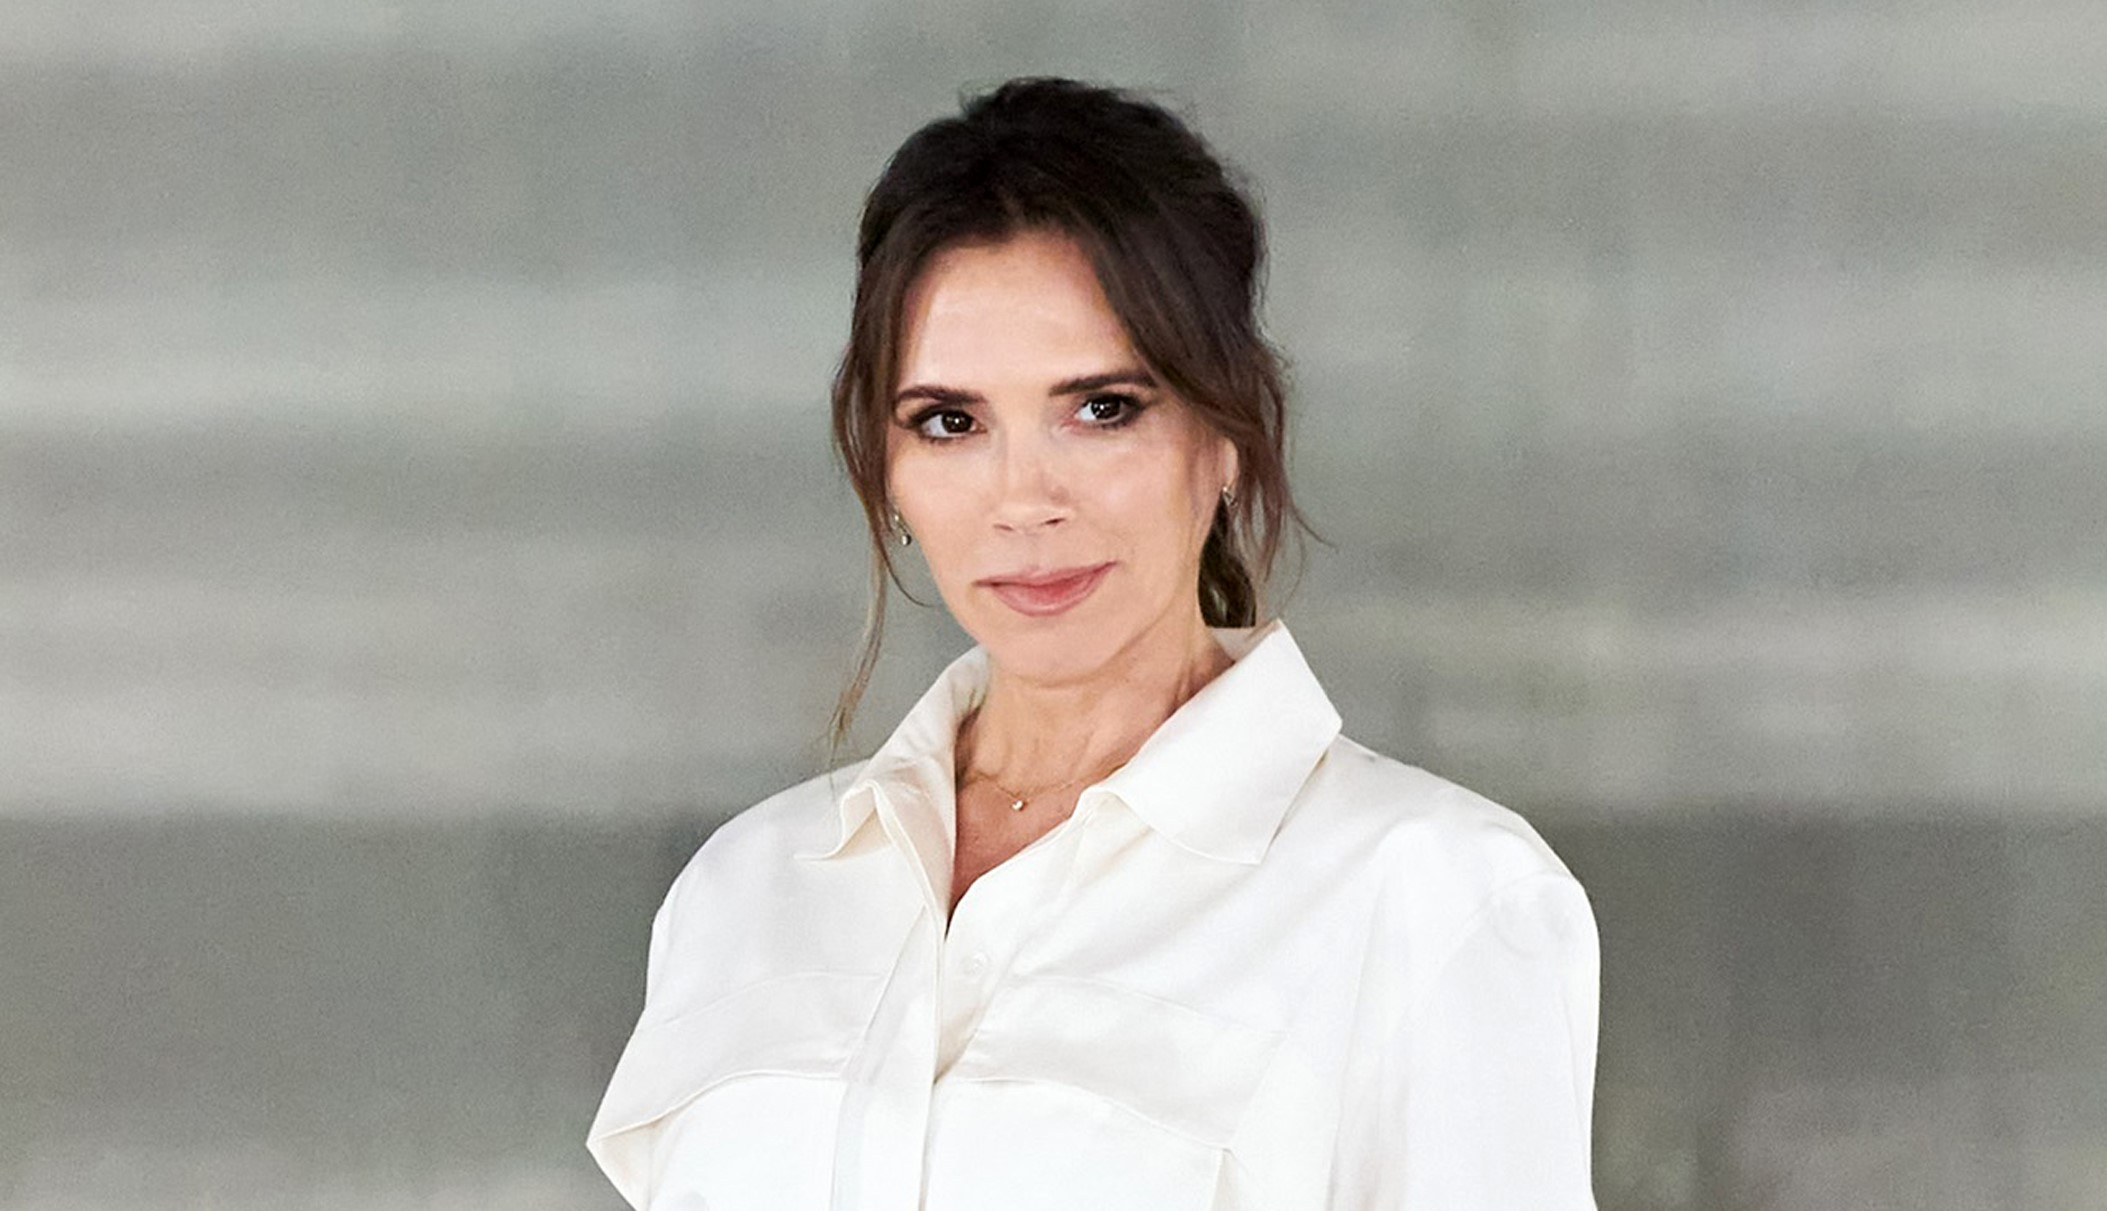 Victoria Beckham invites fans to her virtual birthday party